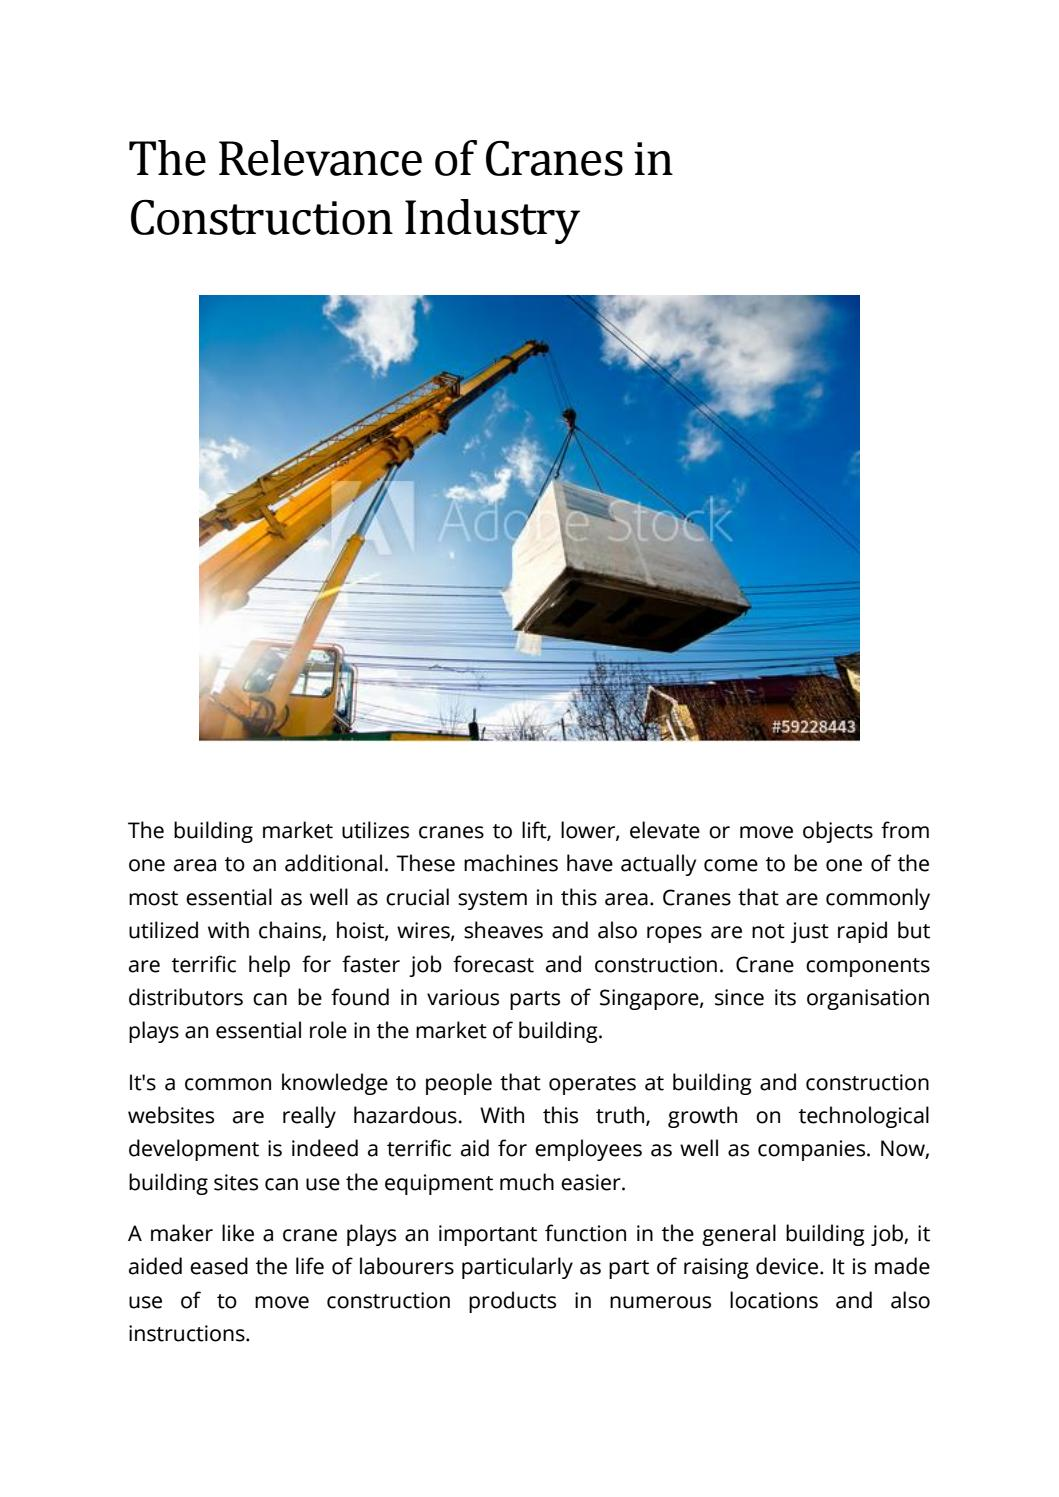 The Relevance Of Cranes In Construction Industry By Legasy Issuu